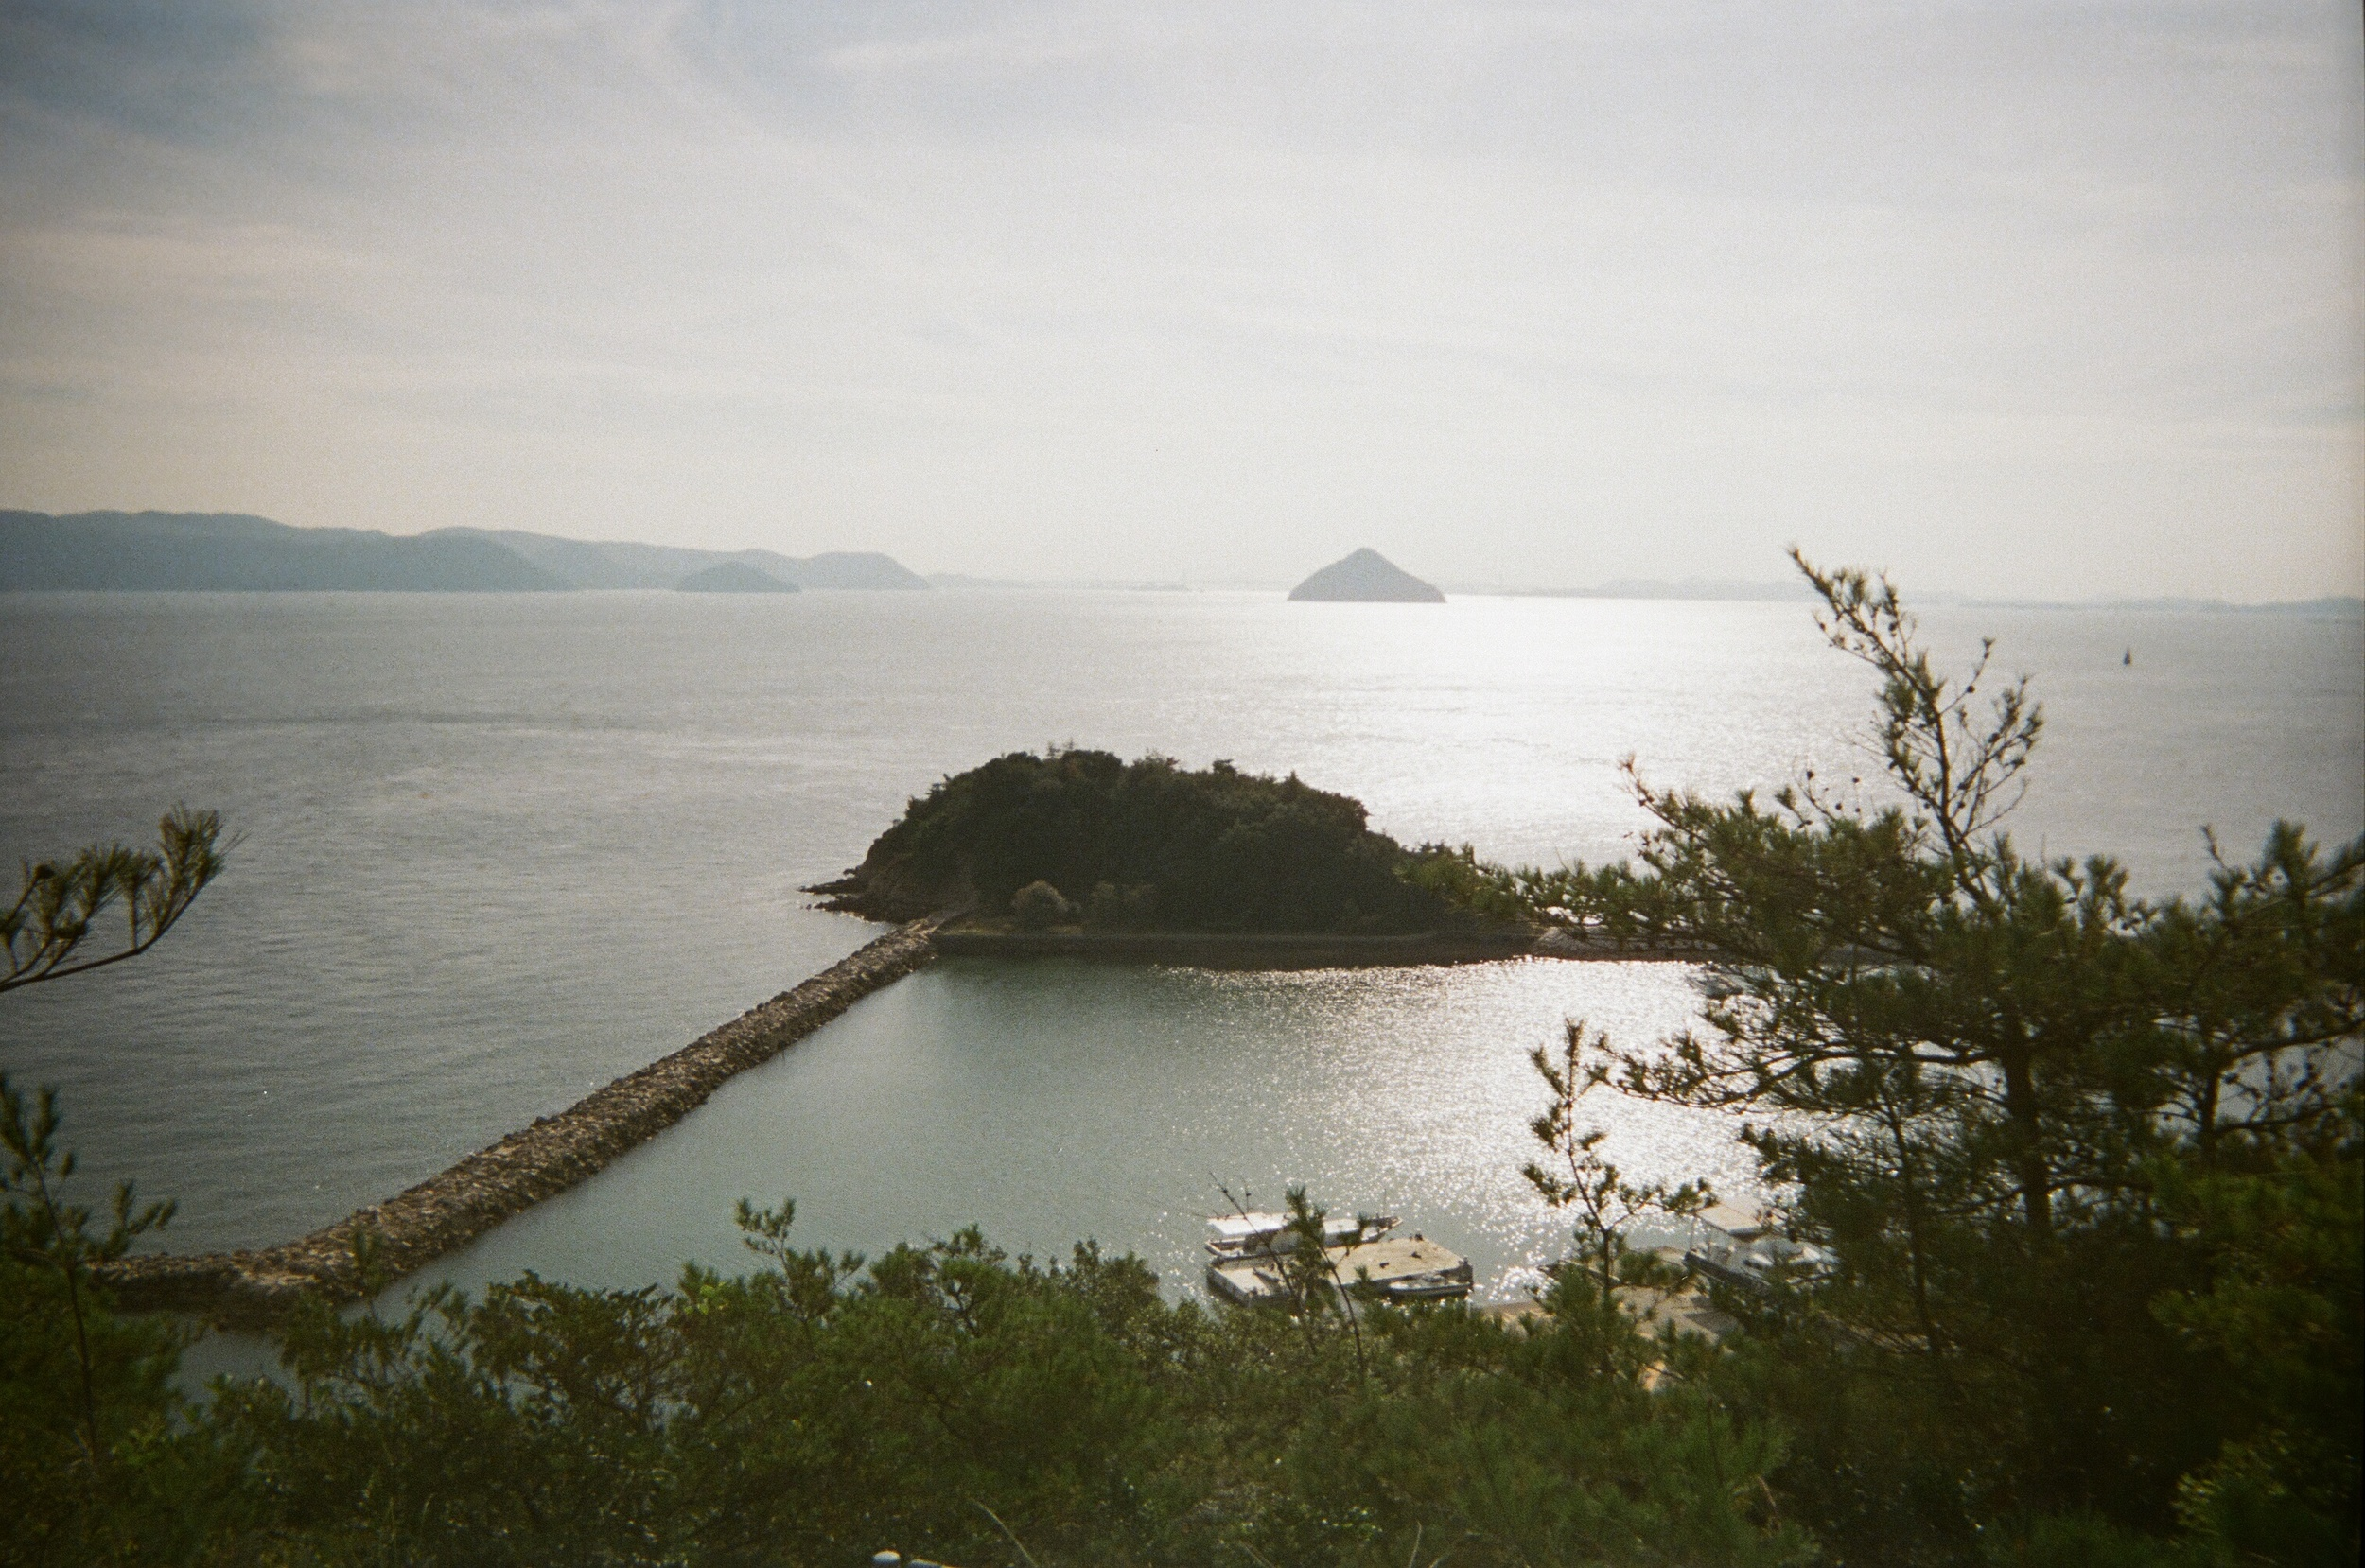 On Naoshima looking out towards the Seto Inland Sea. On Naoshima everything is beautiful, by nature or design- it's hard to tell the difference between the two.